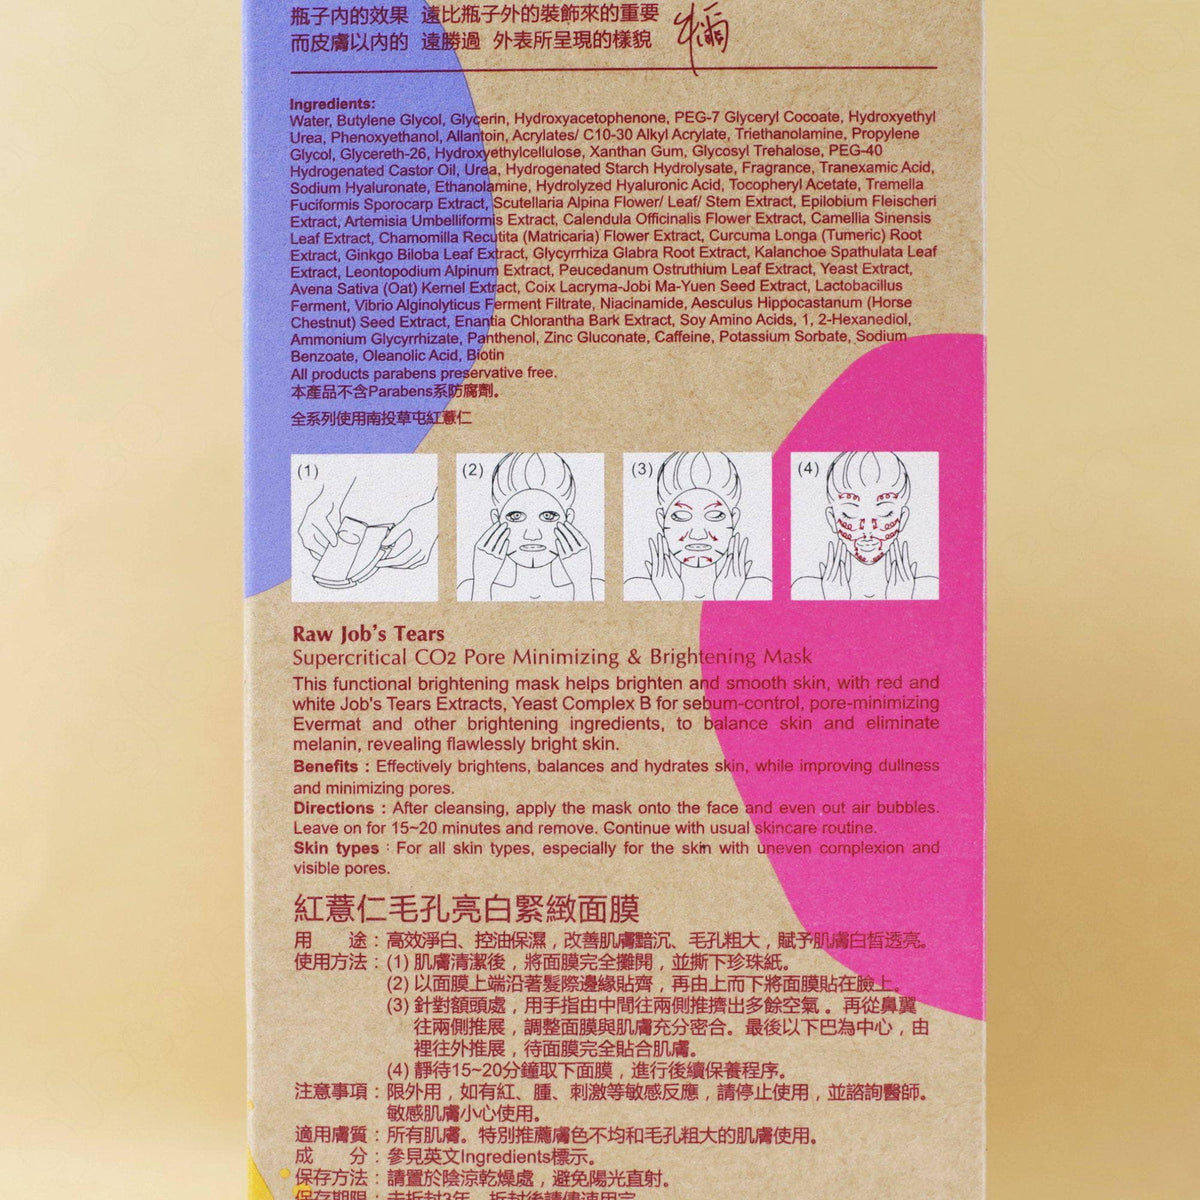 Naruko Raw Job's Tears Supercritical CO2 Brightening Mask